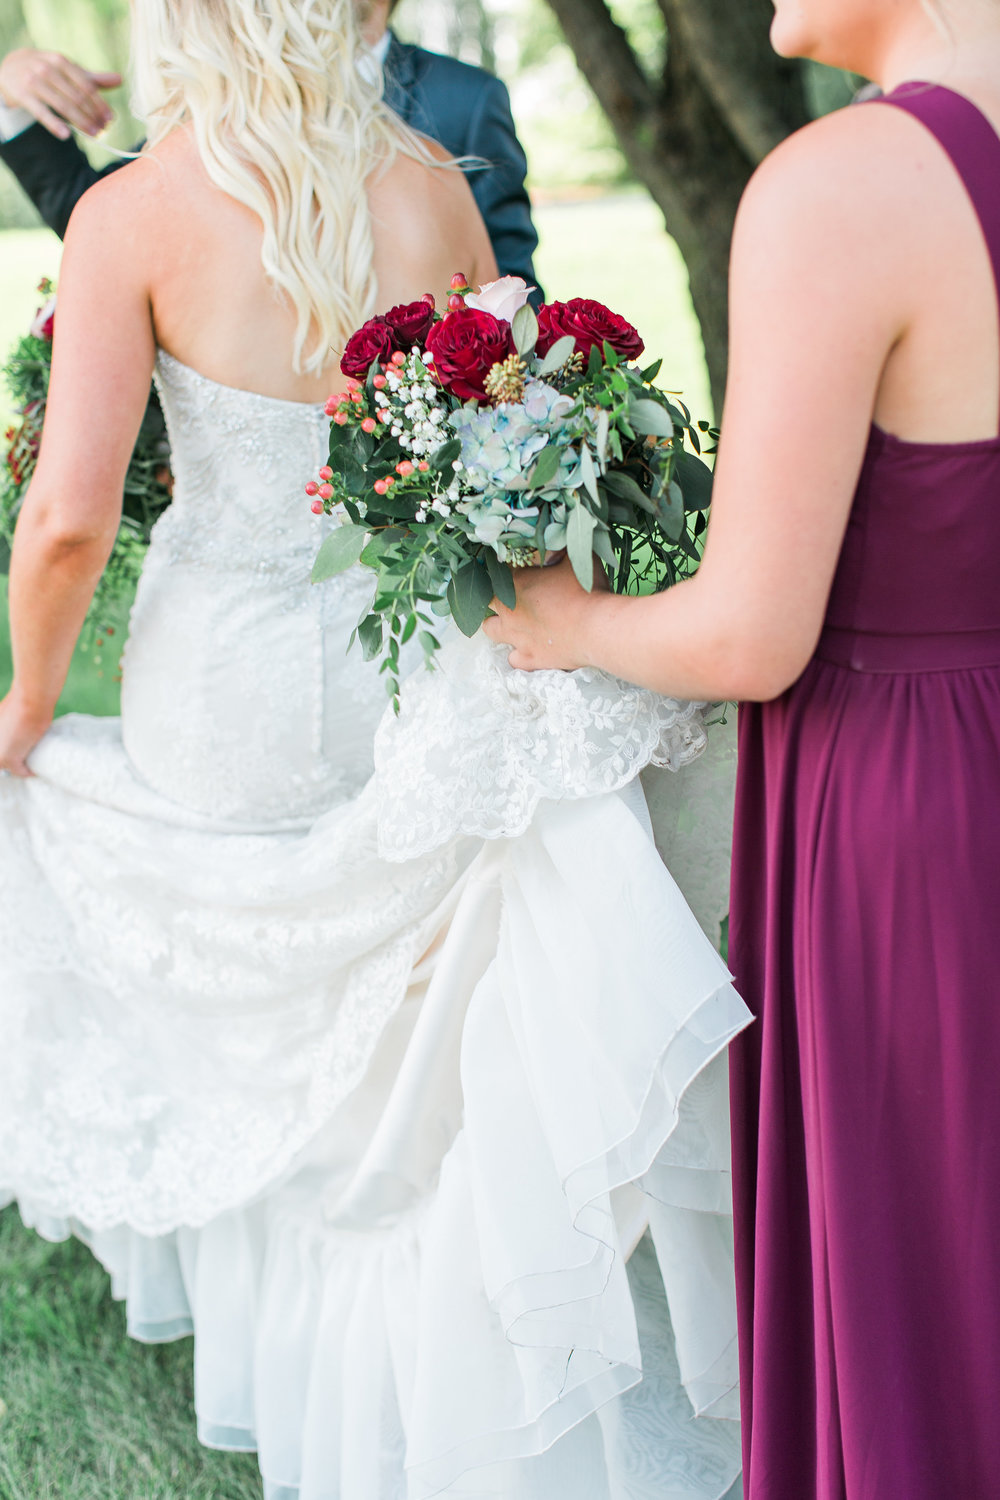 Minnesota burgundy wedding bridesmaid holding bride's dress Minnesota wedding photography Mallory Kiesow Photography